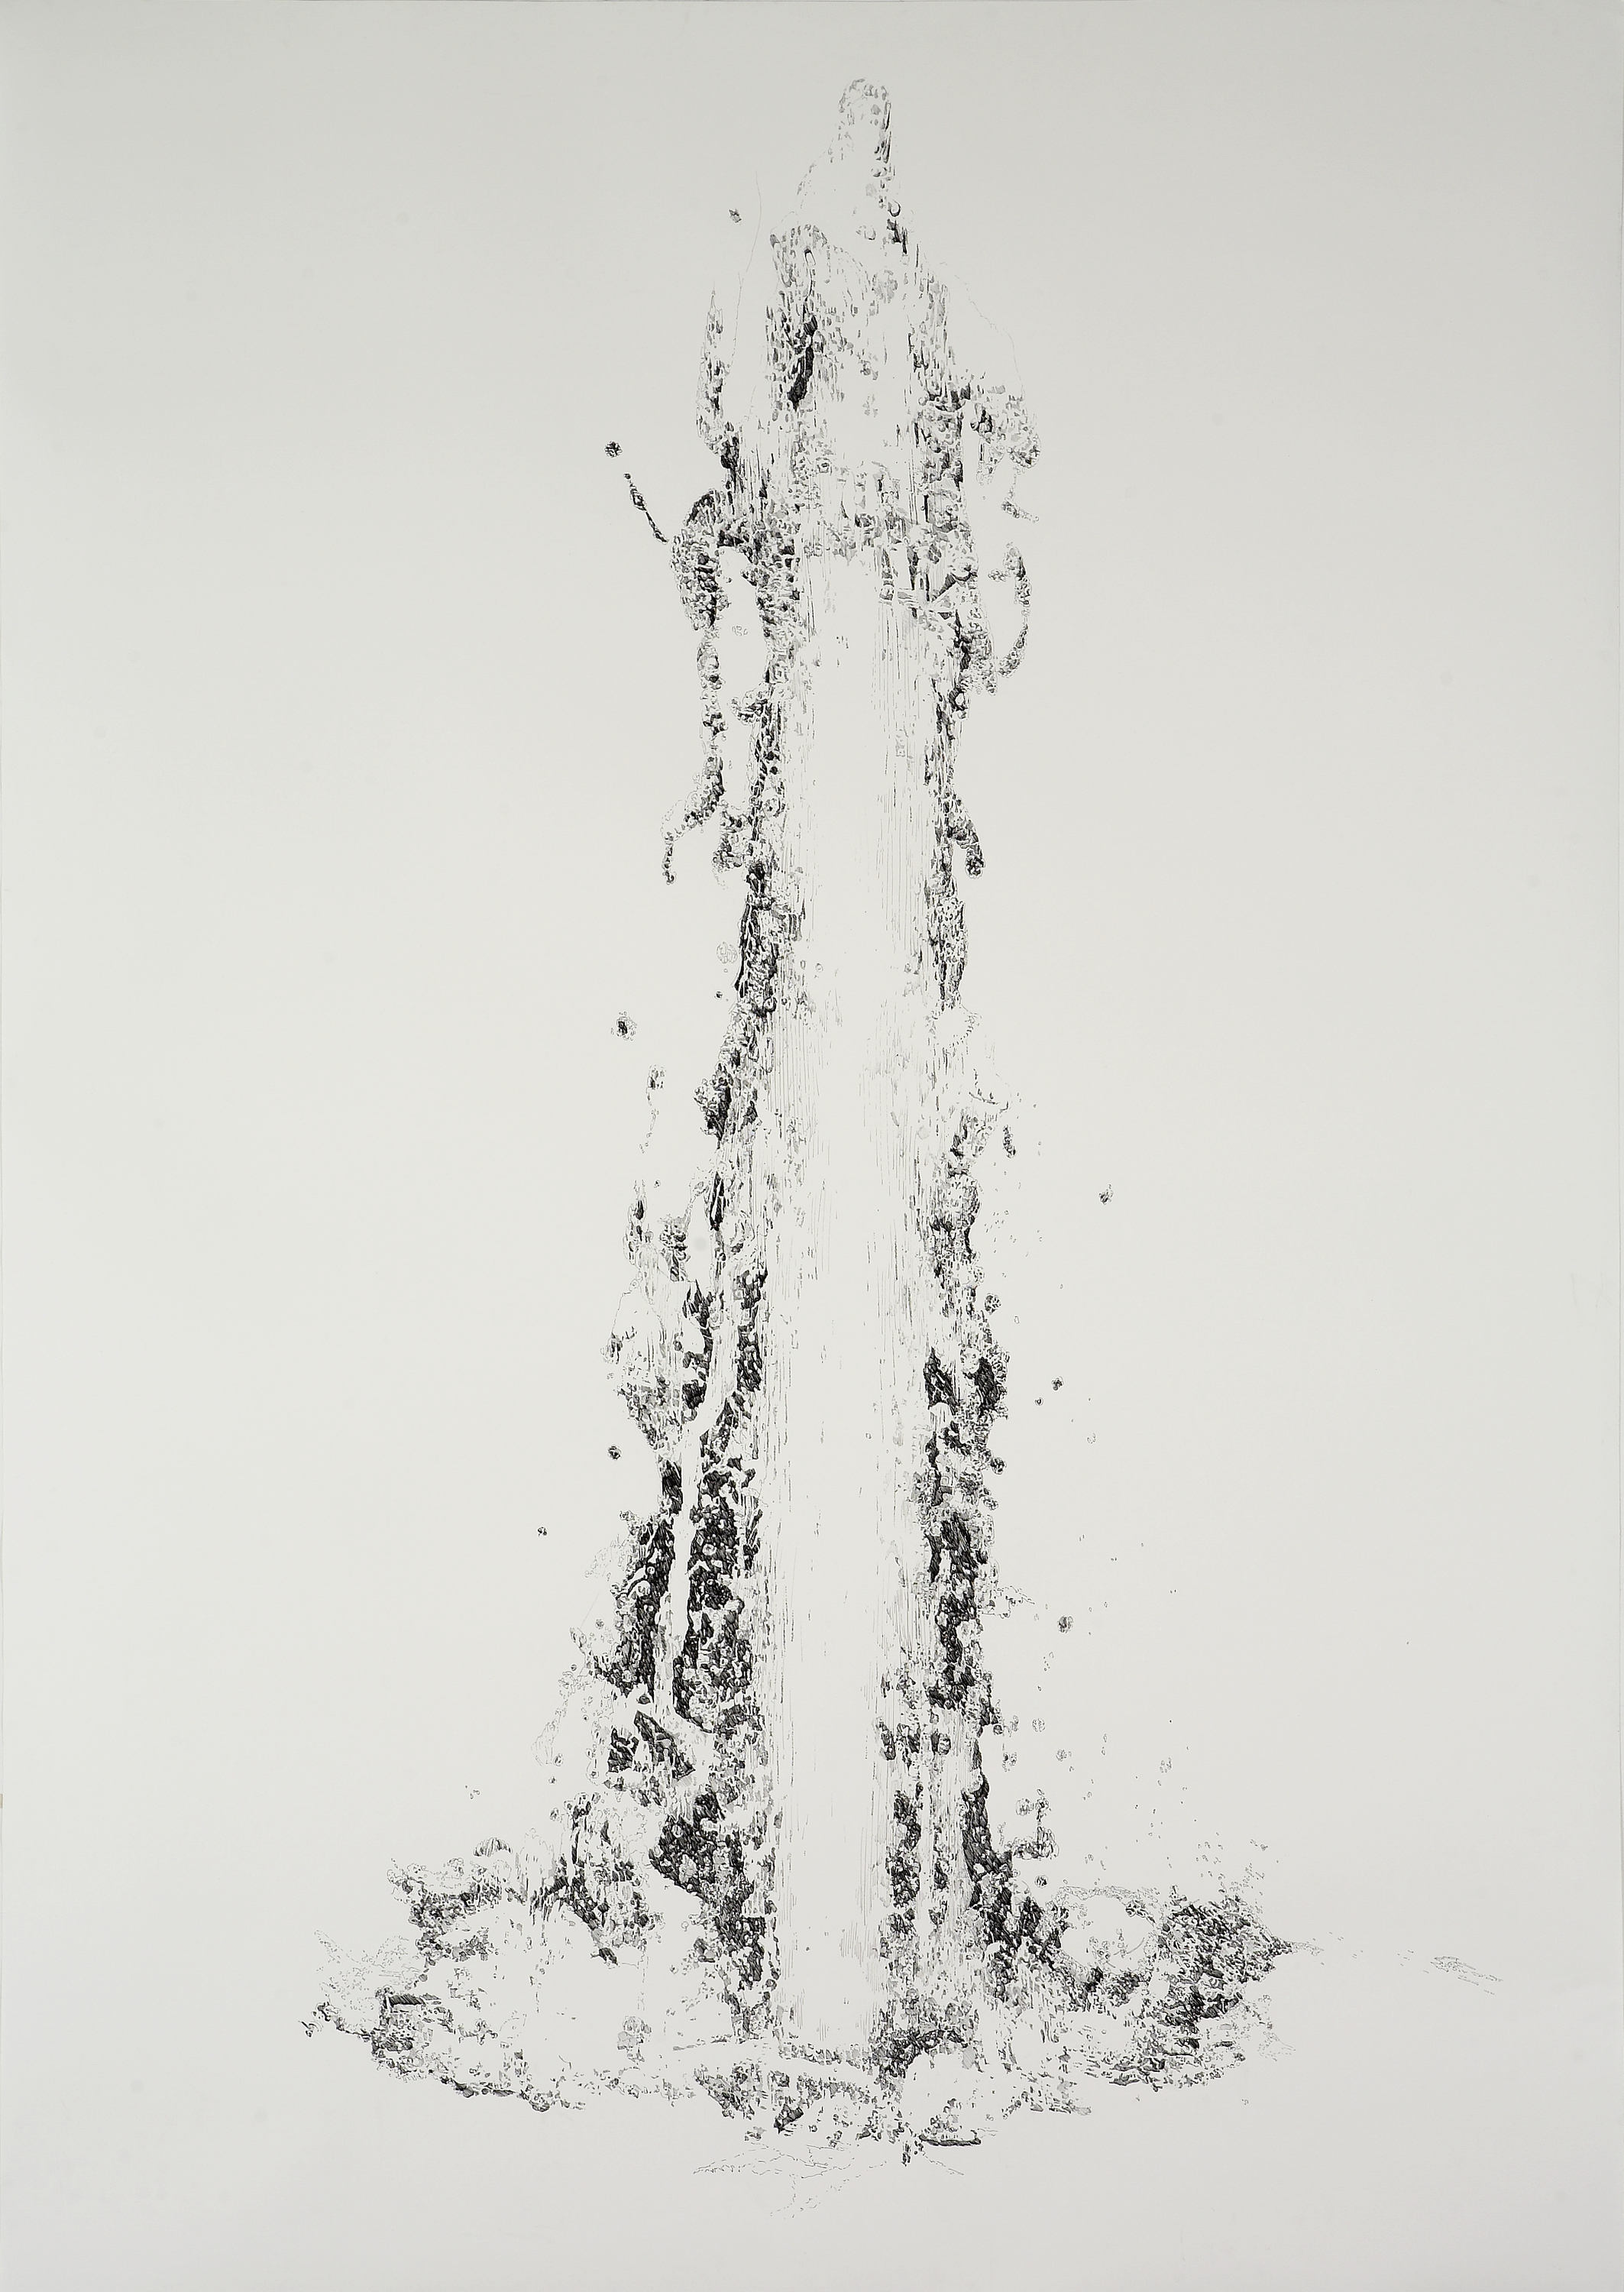 BK P5.002 | untitled | ink on paper | 200x150cm | 2011 | privat collection berlin